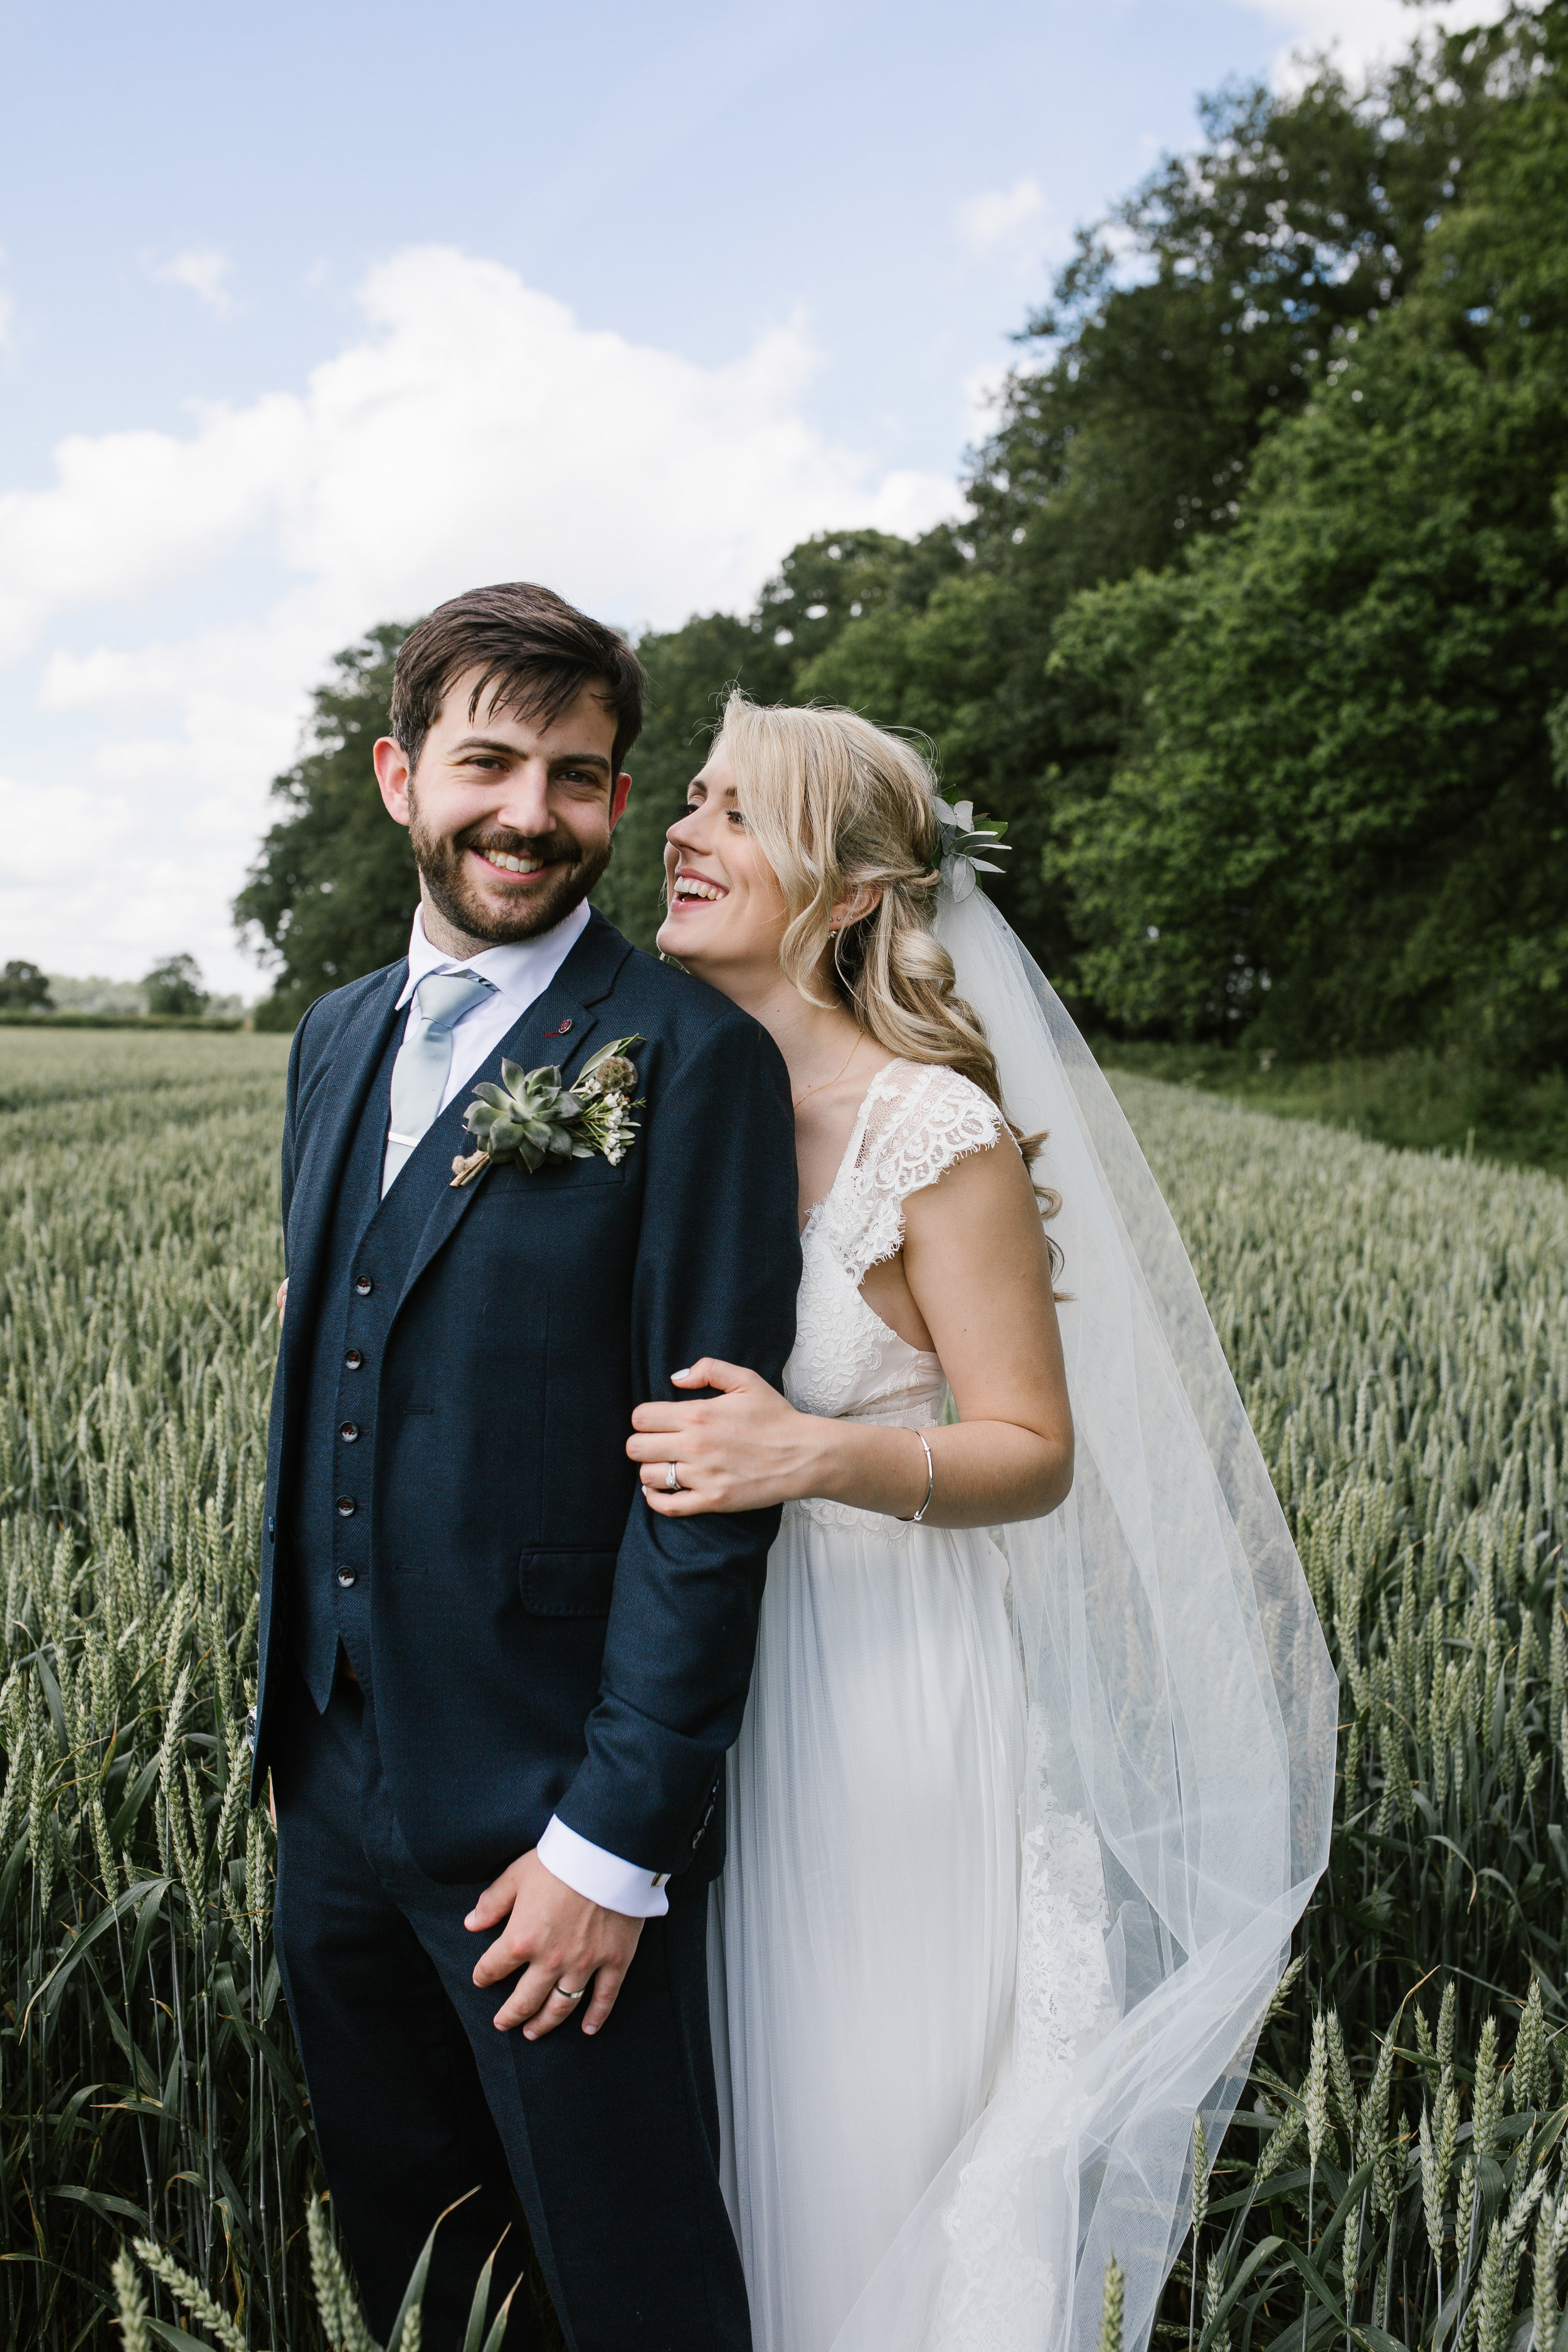 relaxed photo of boho bride and groom at their festival wedding at wildwood bluebell at the cotswolds